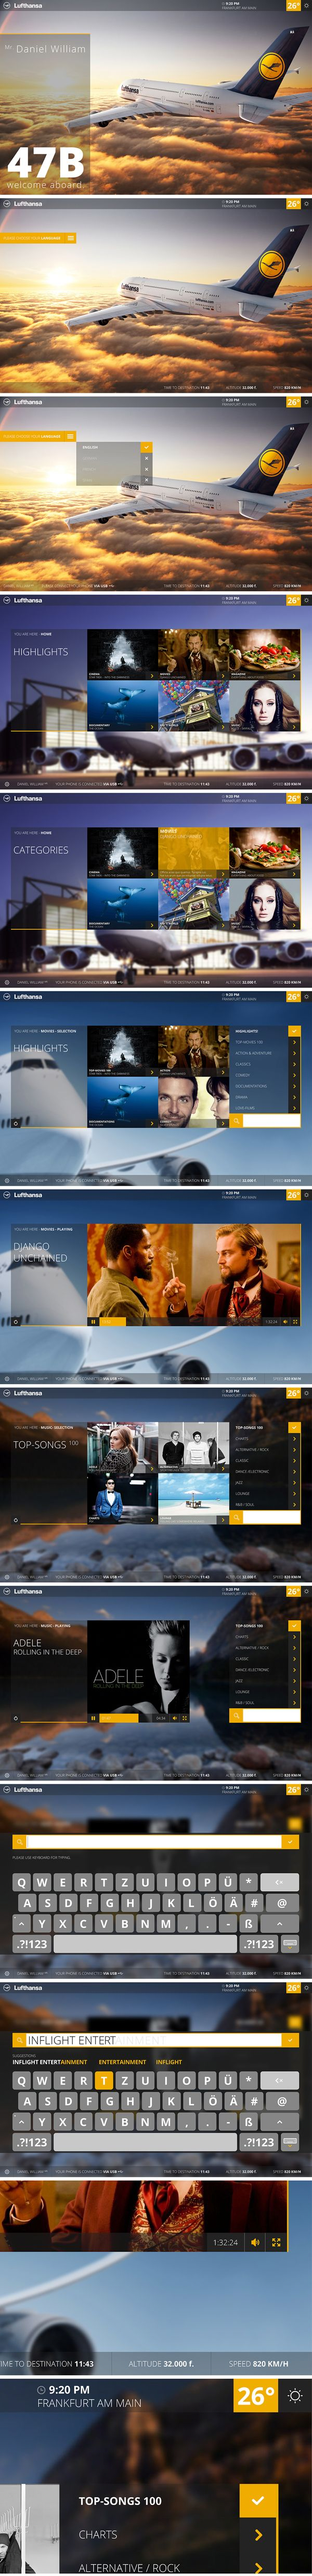 Lufthansa Inflight • UI by Jens Kreuter , via Behance